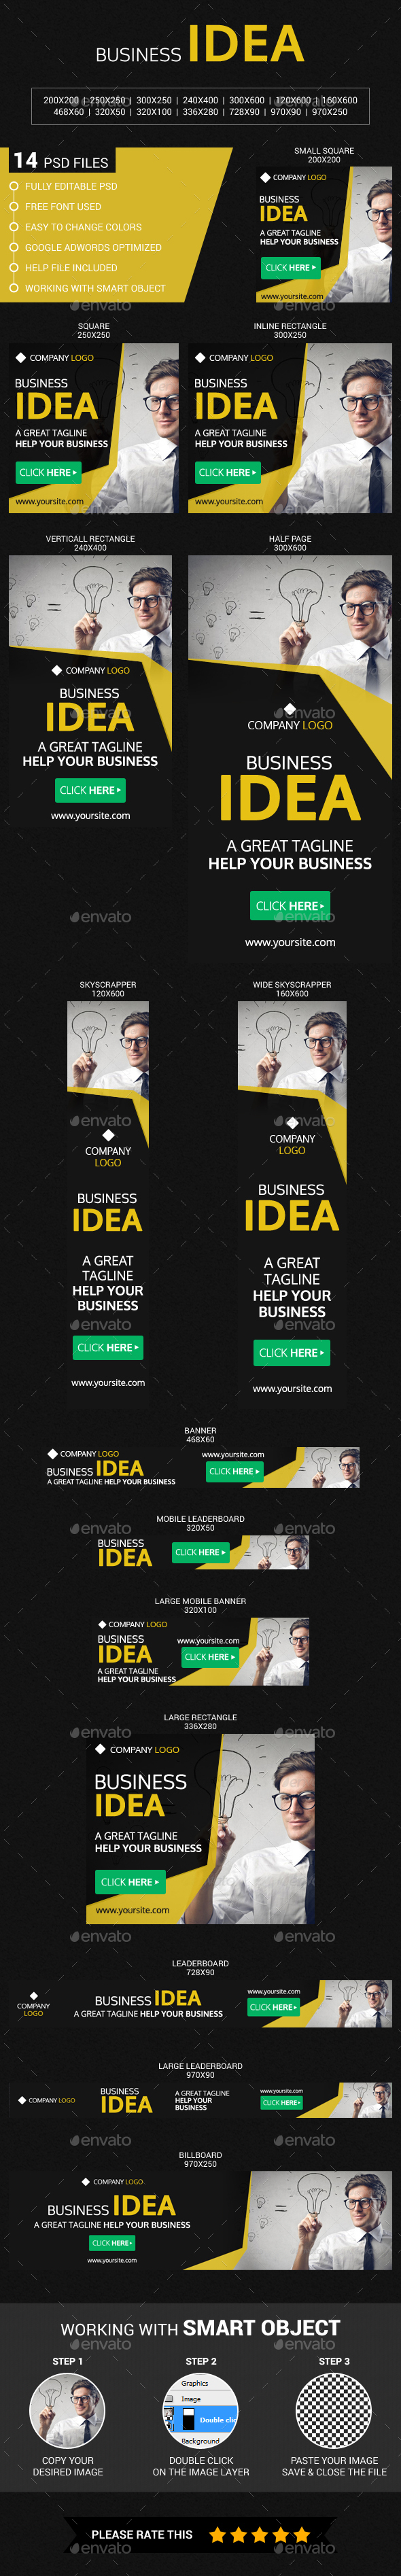 Business - Banners & Ads Web Elements